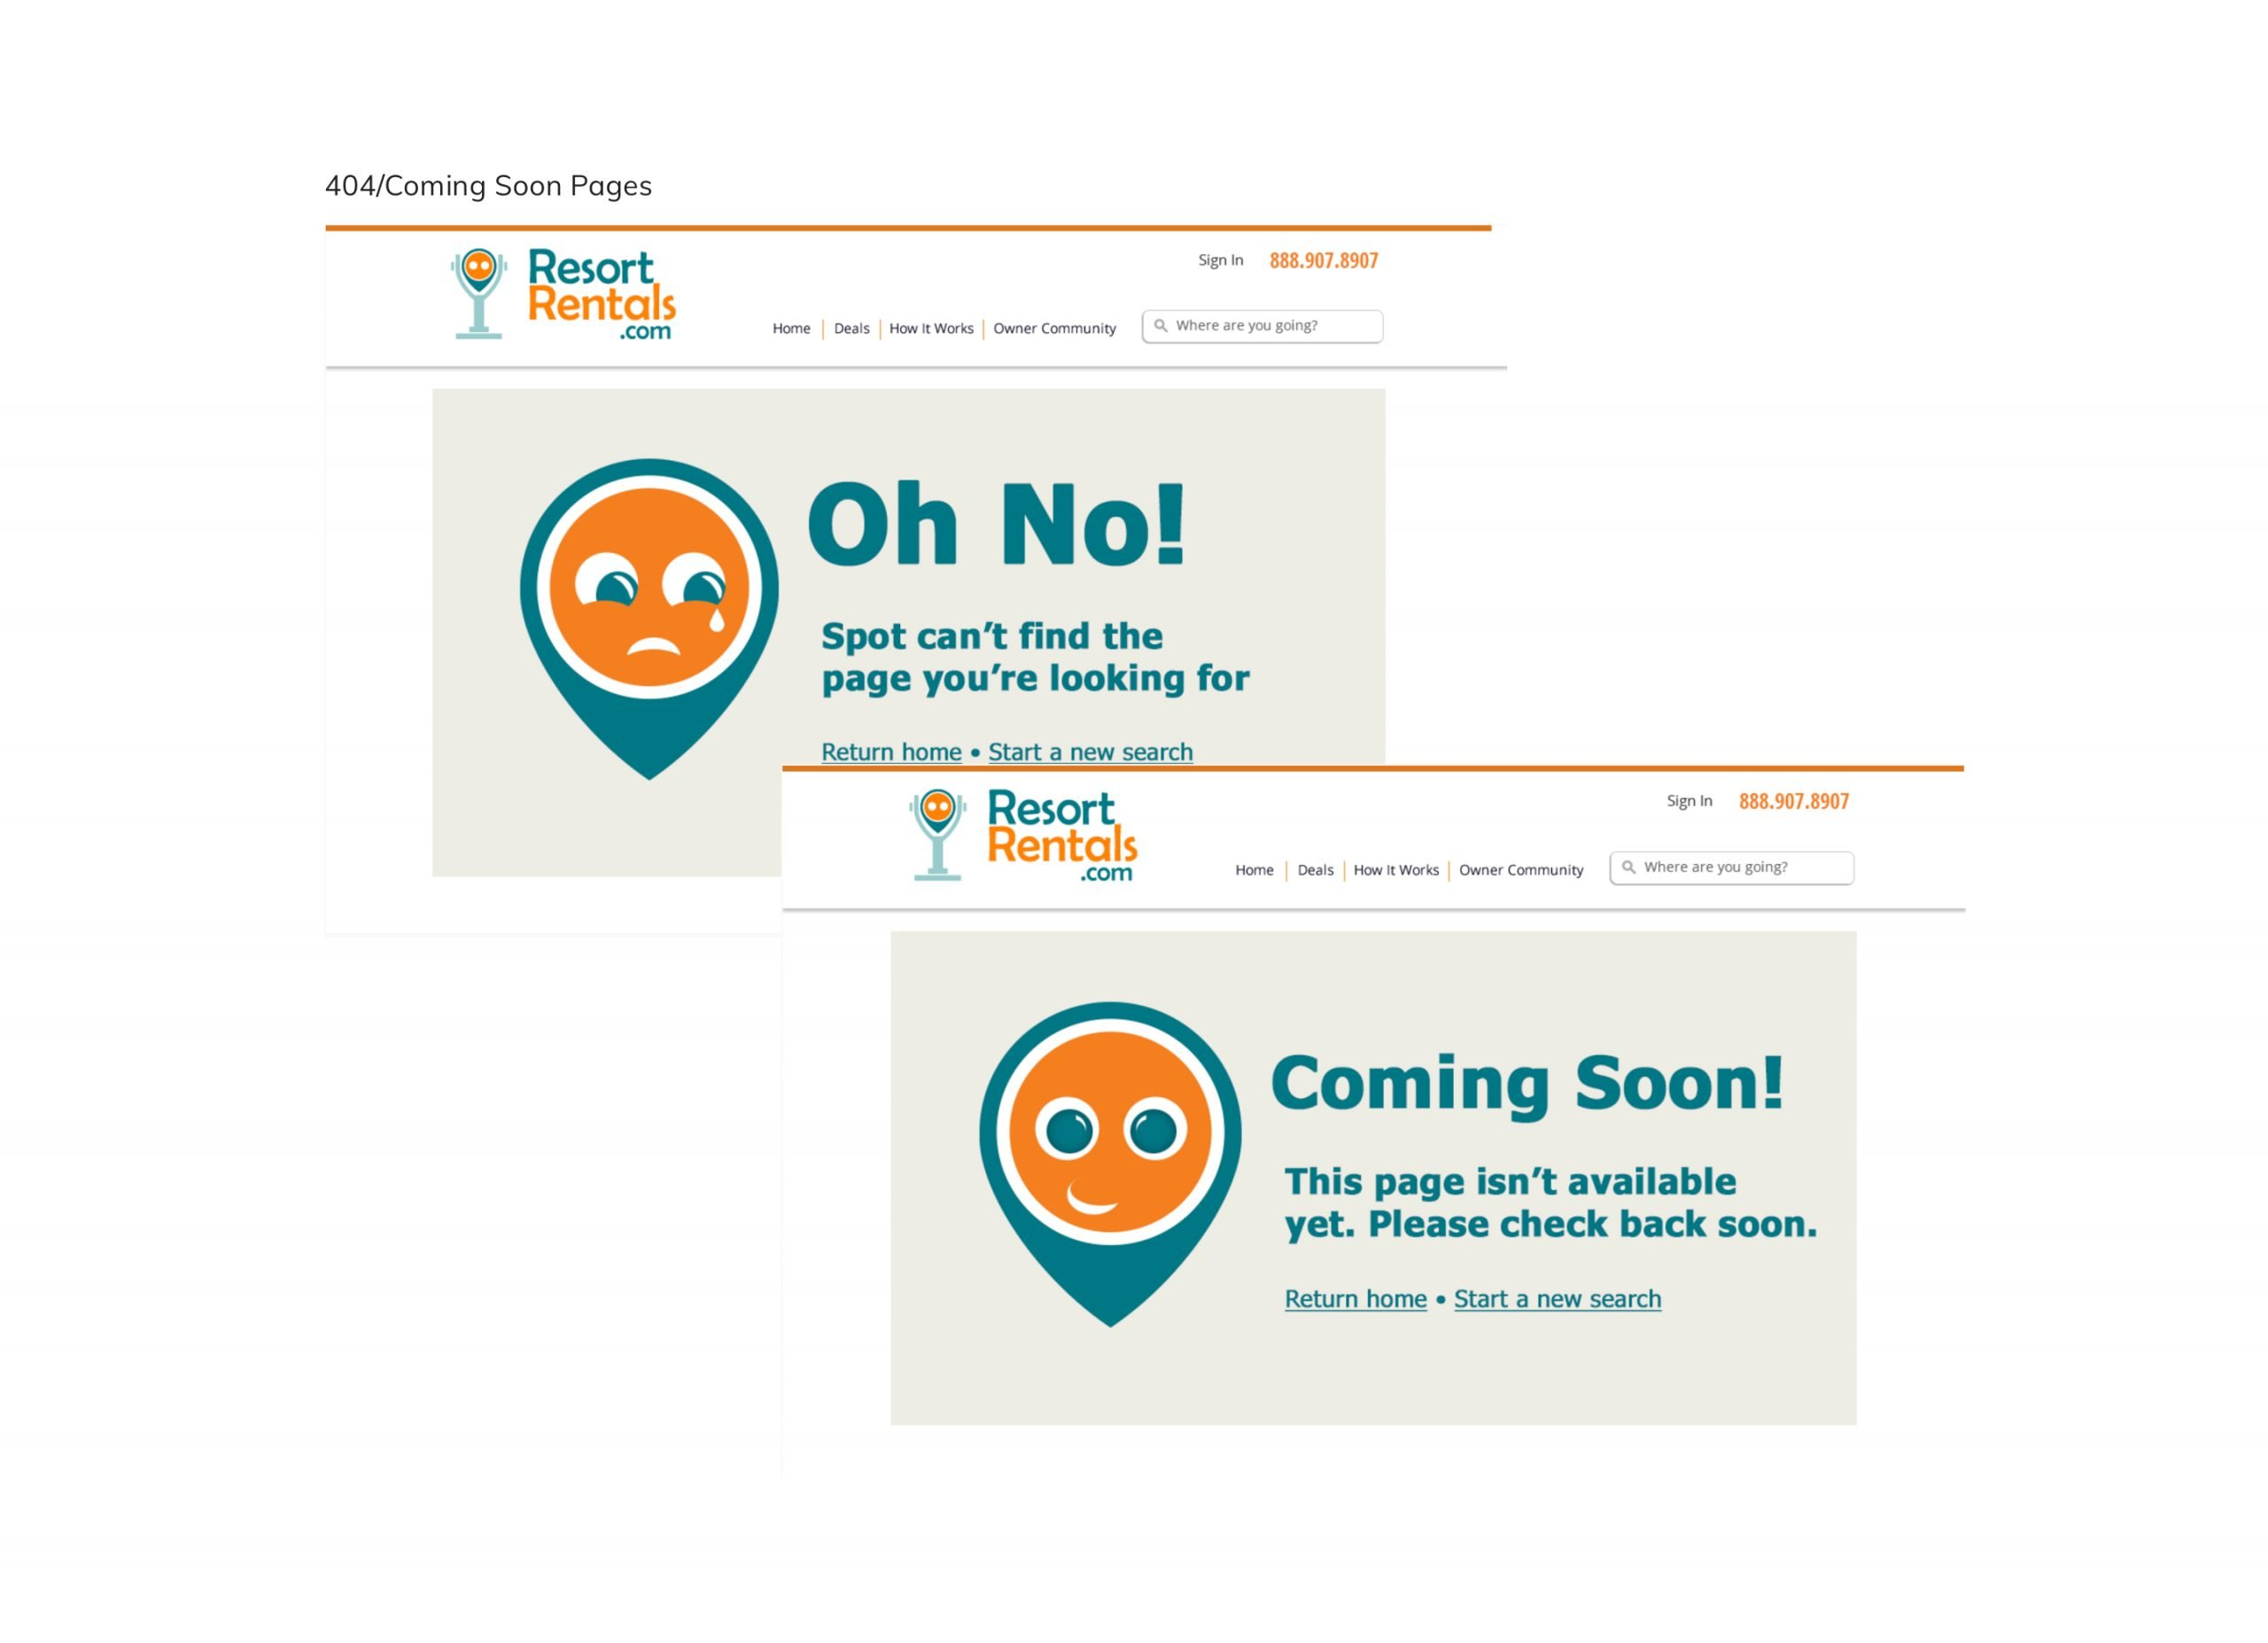 Travel Booking site 404 and coming soon pages